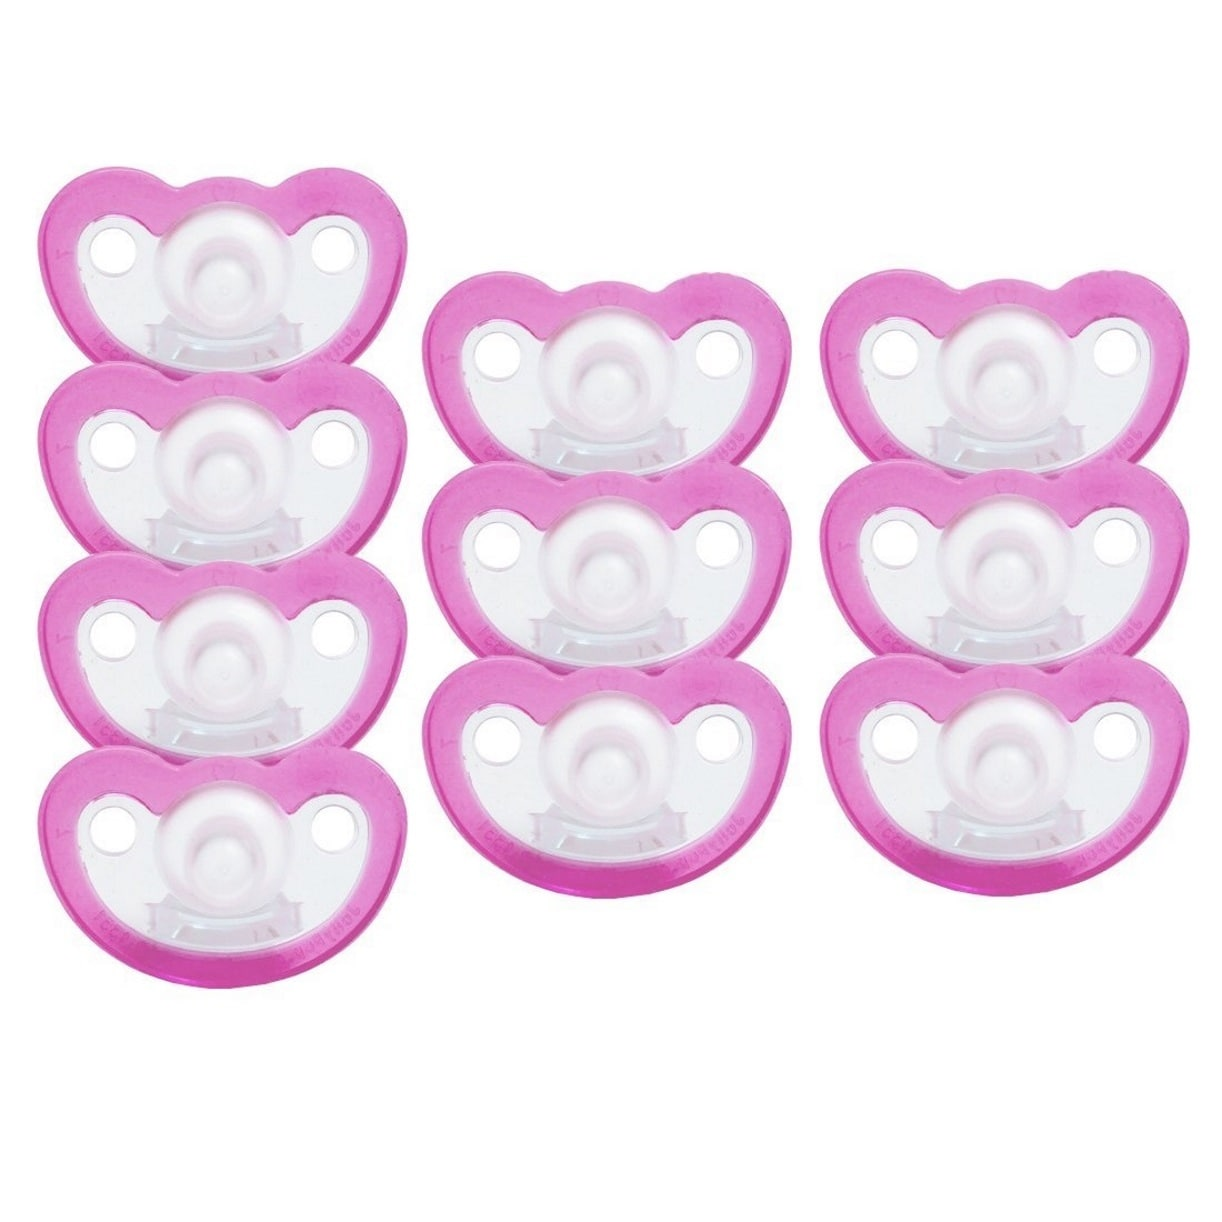 JollyPop Pink Unscented Silicone Pacifier Preemie (10 Pac...